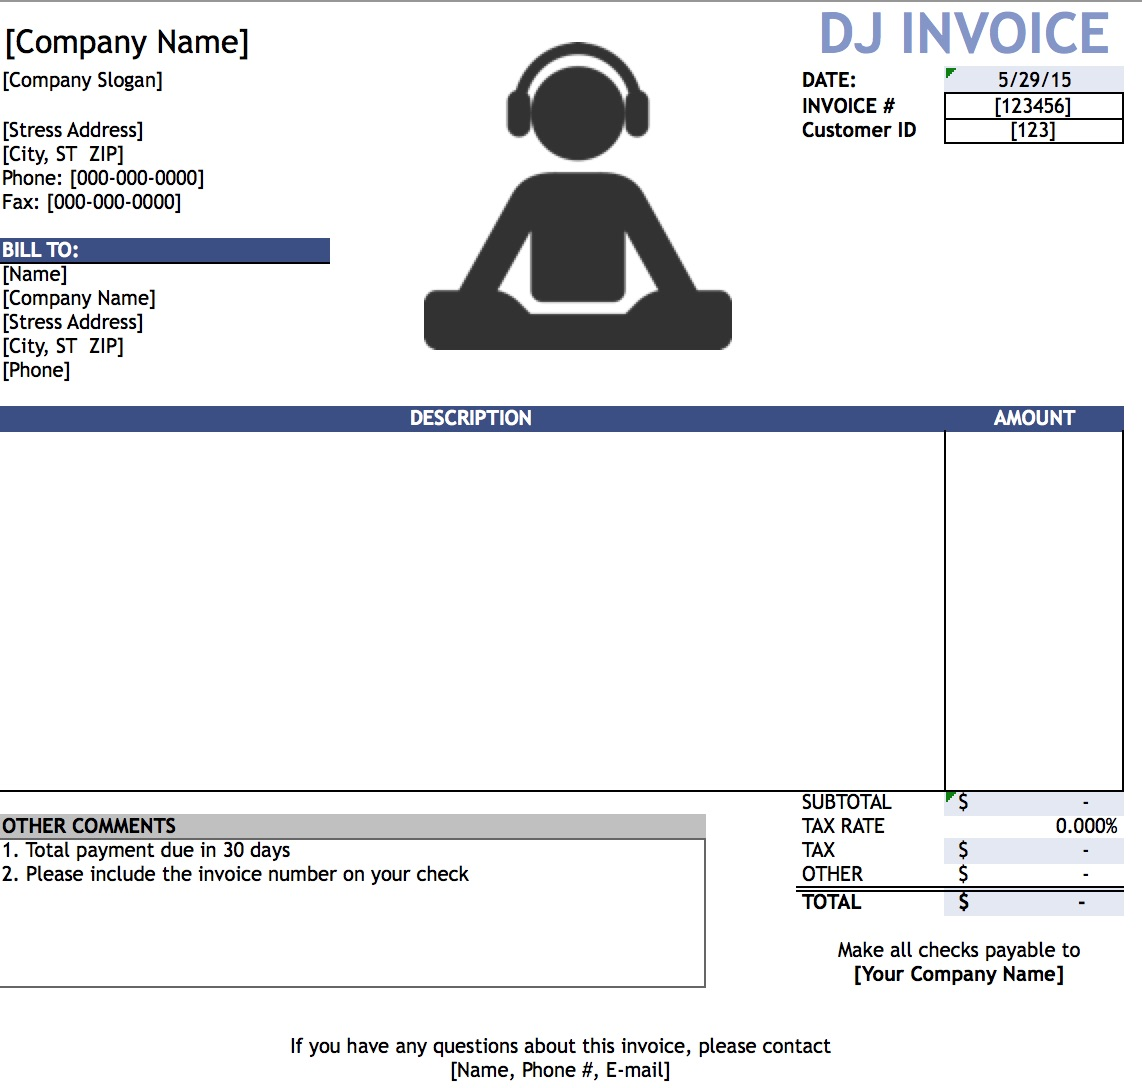 Free DJ Disc Jockey Invoice Template Excel PDF Word Doc - Simple proforma invoice template for service business